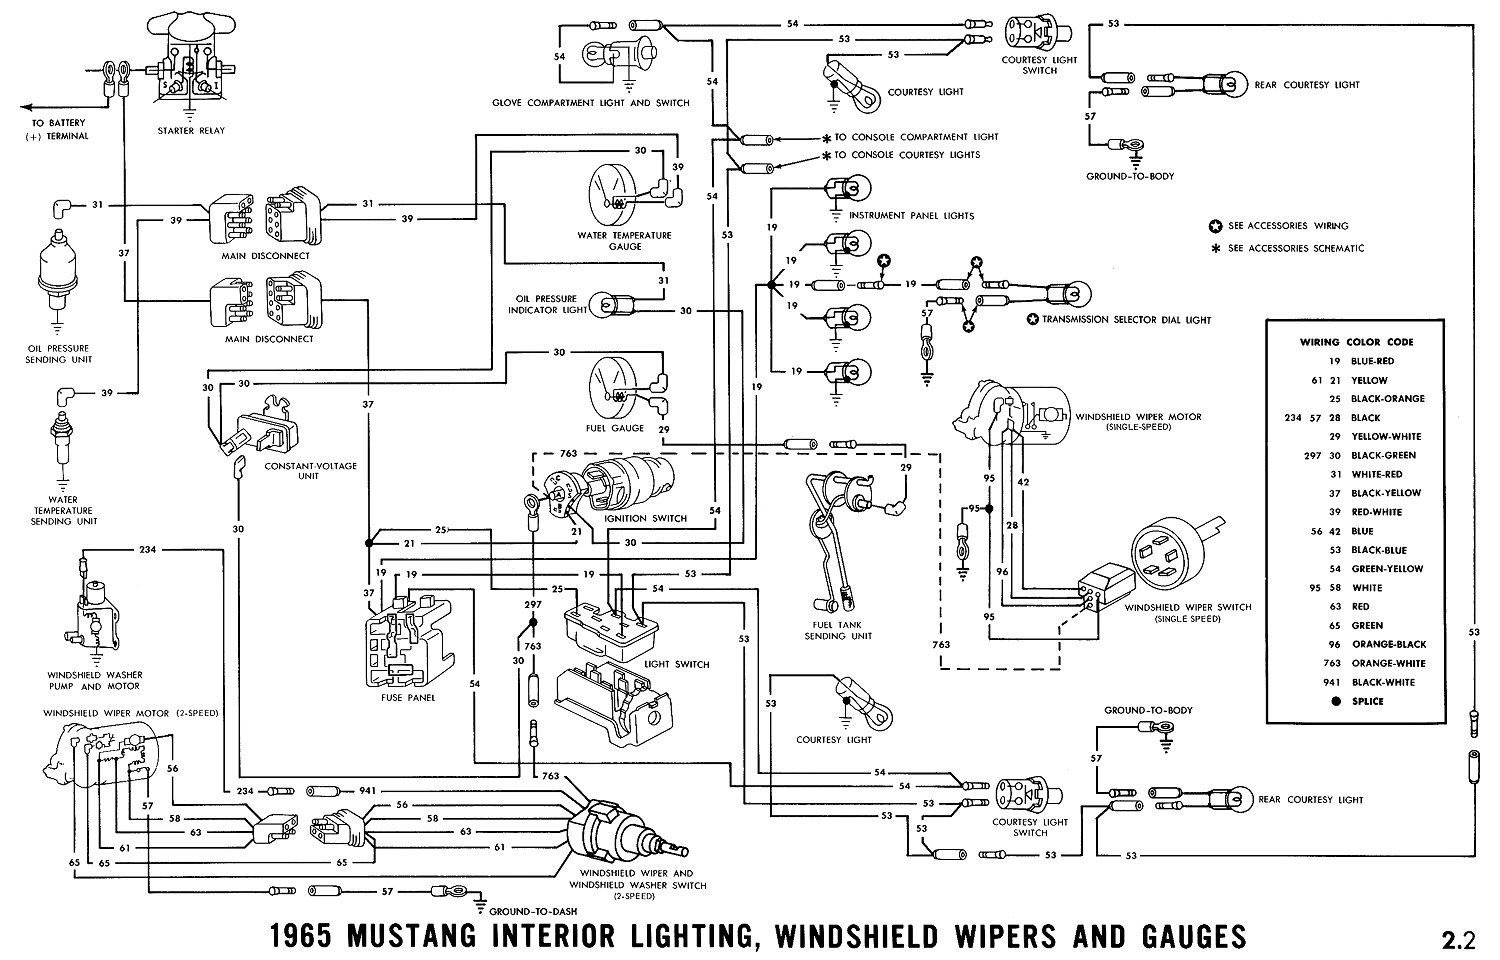 1965g 1965 mustang wiring diagrams average joe restoration 1966 mustang headlight wiring diagram at n-0.co